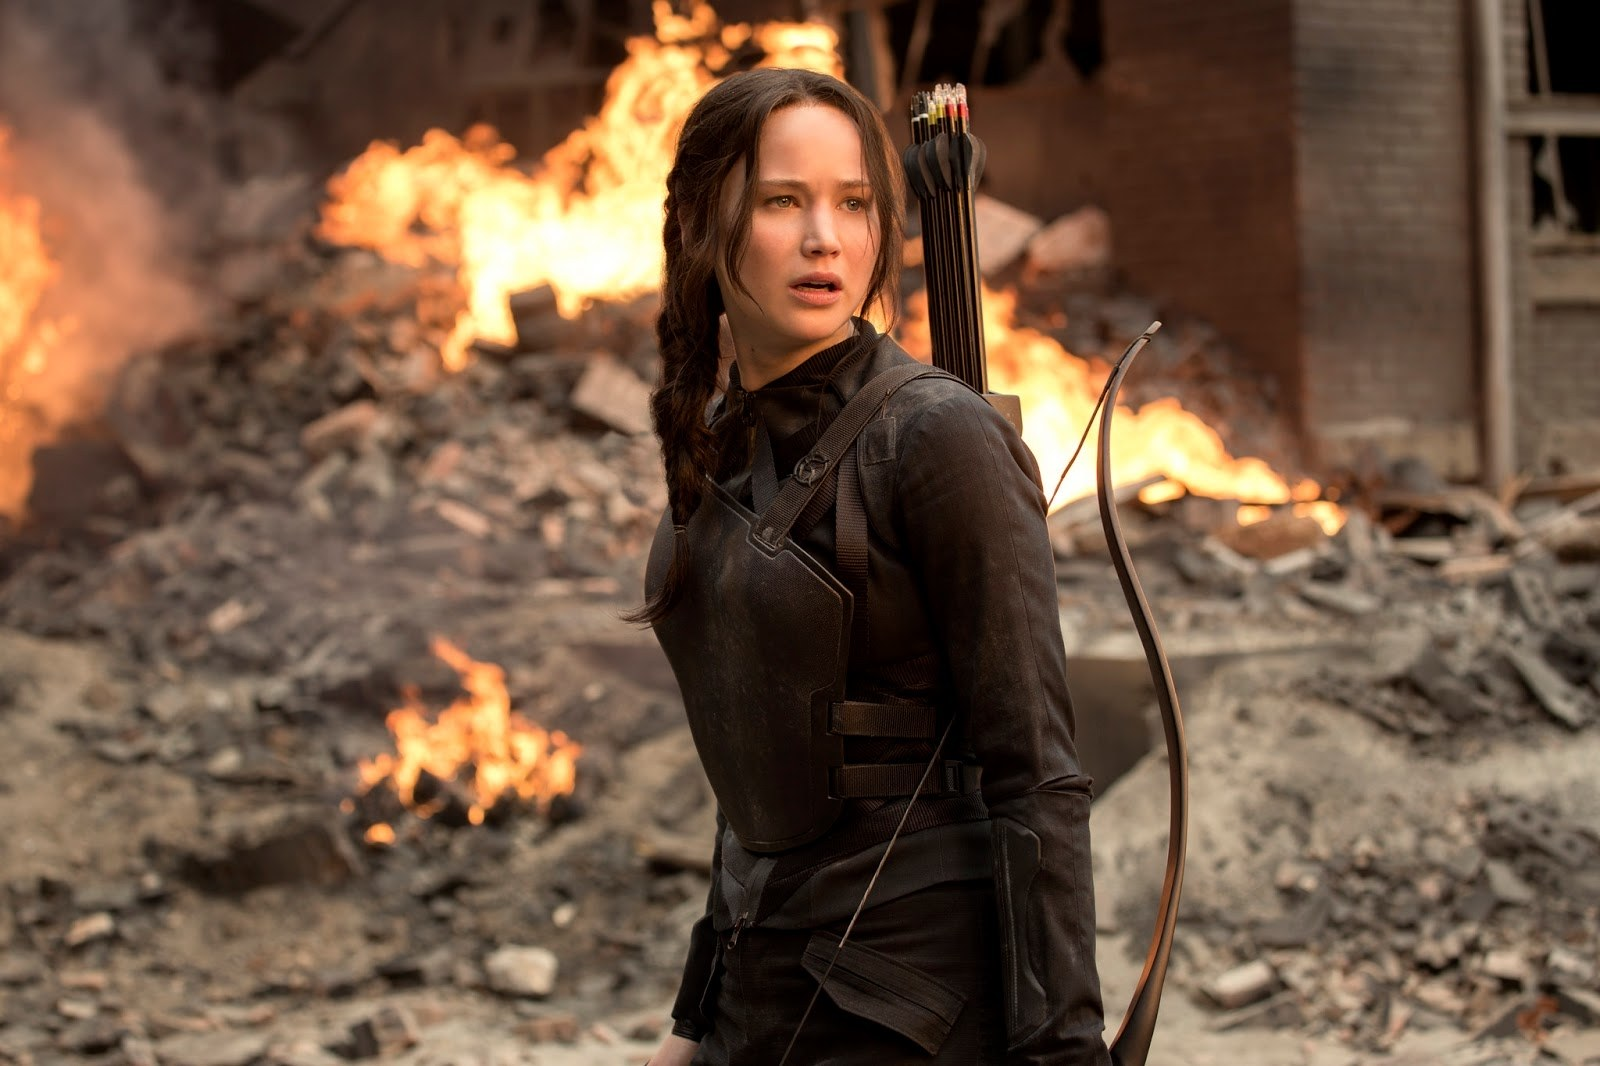 Hunger Games prequel novel officially announced for 2020